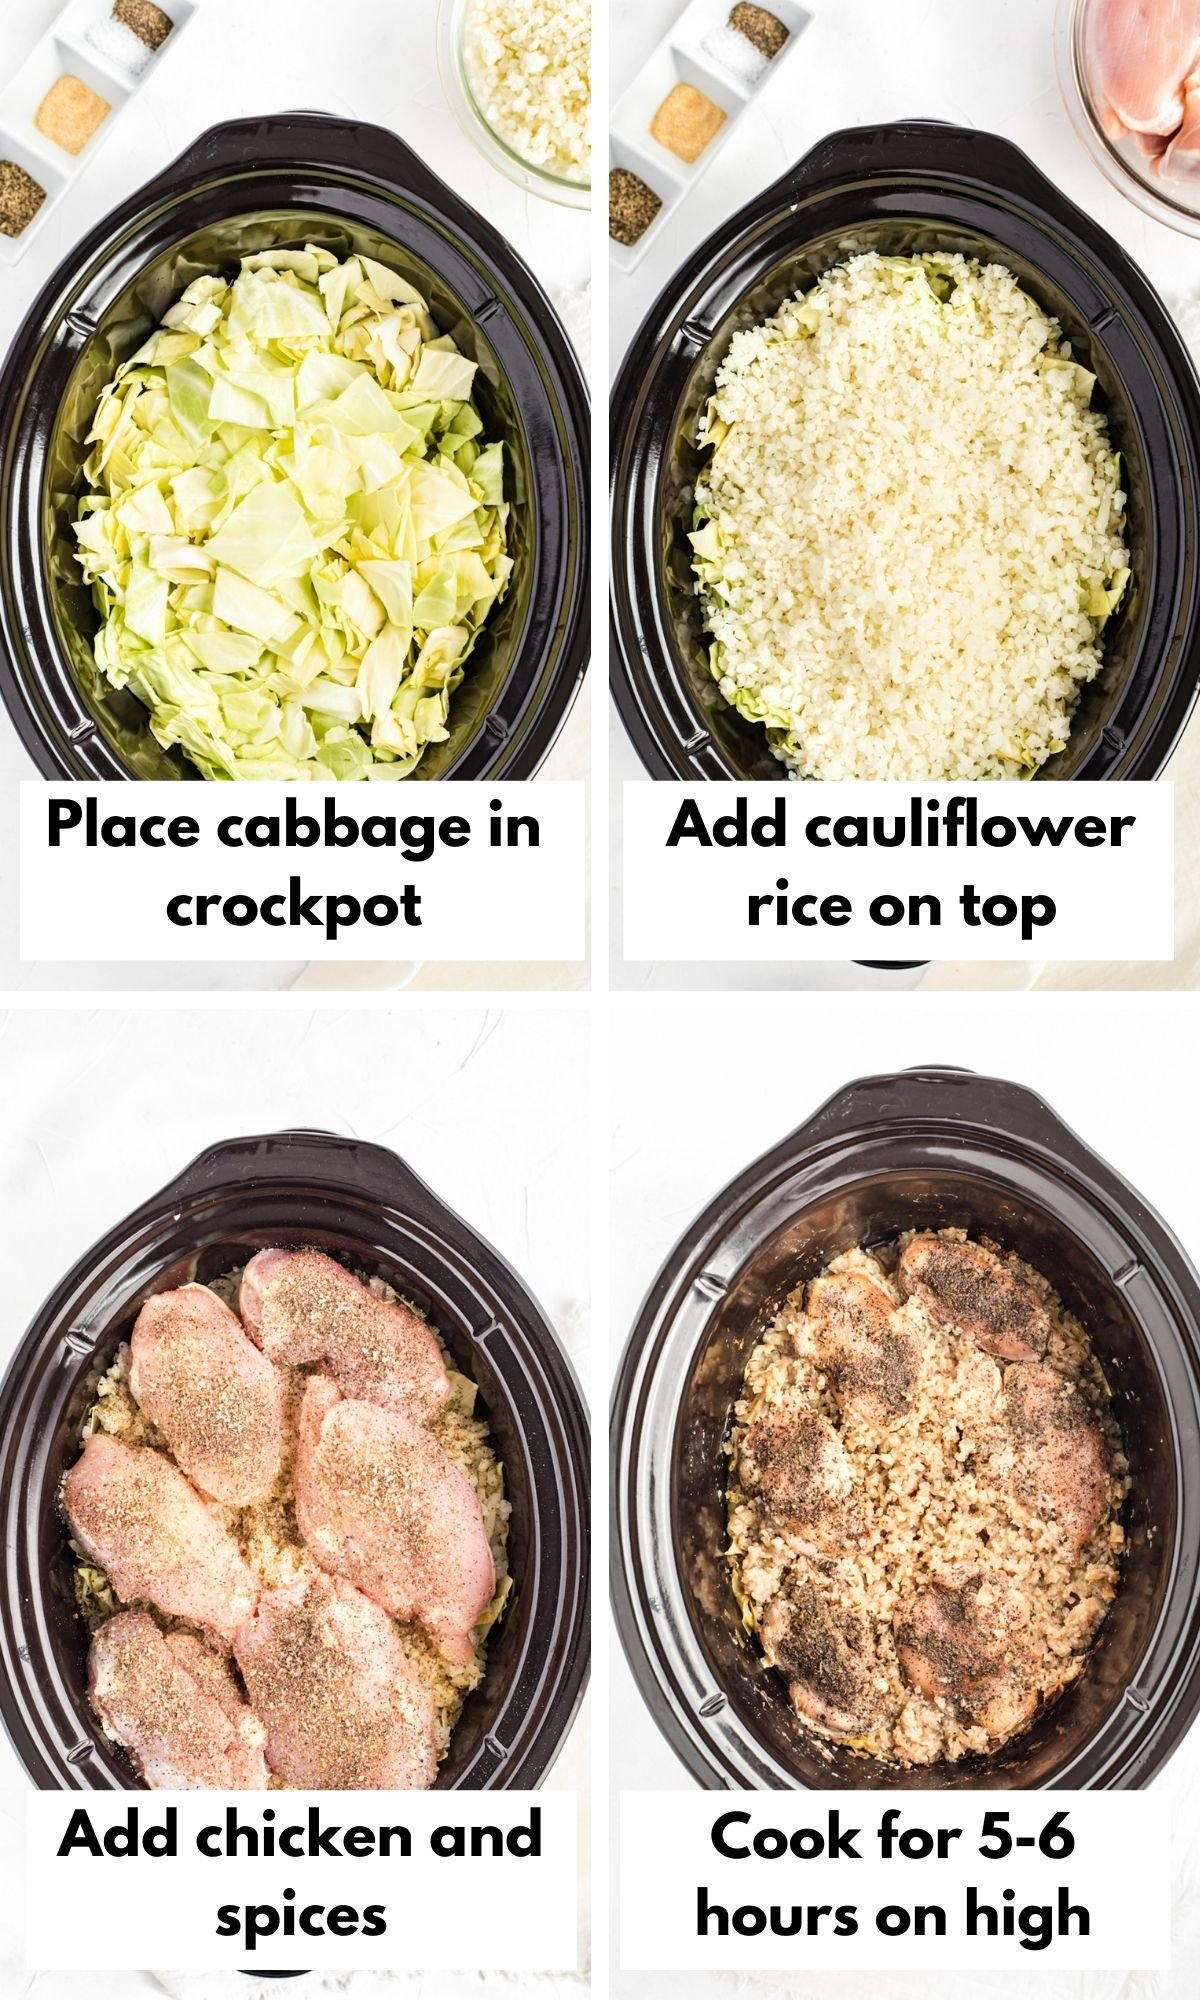 labeled process photos for crockpot chicken and cabbage dish